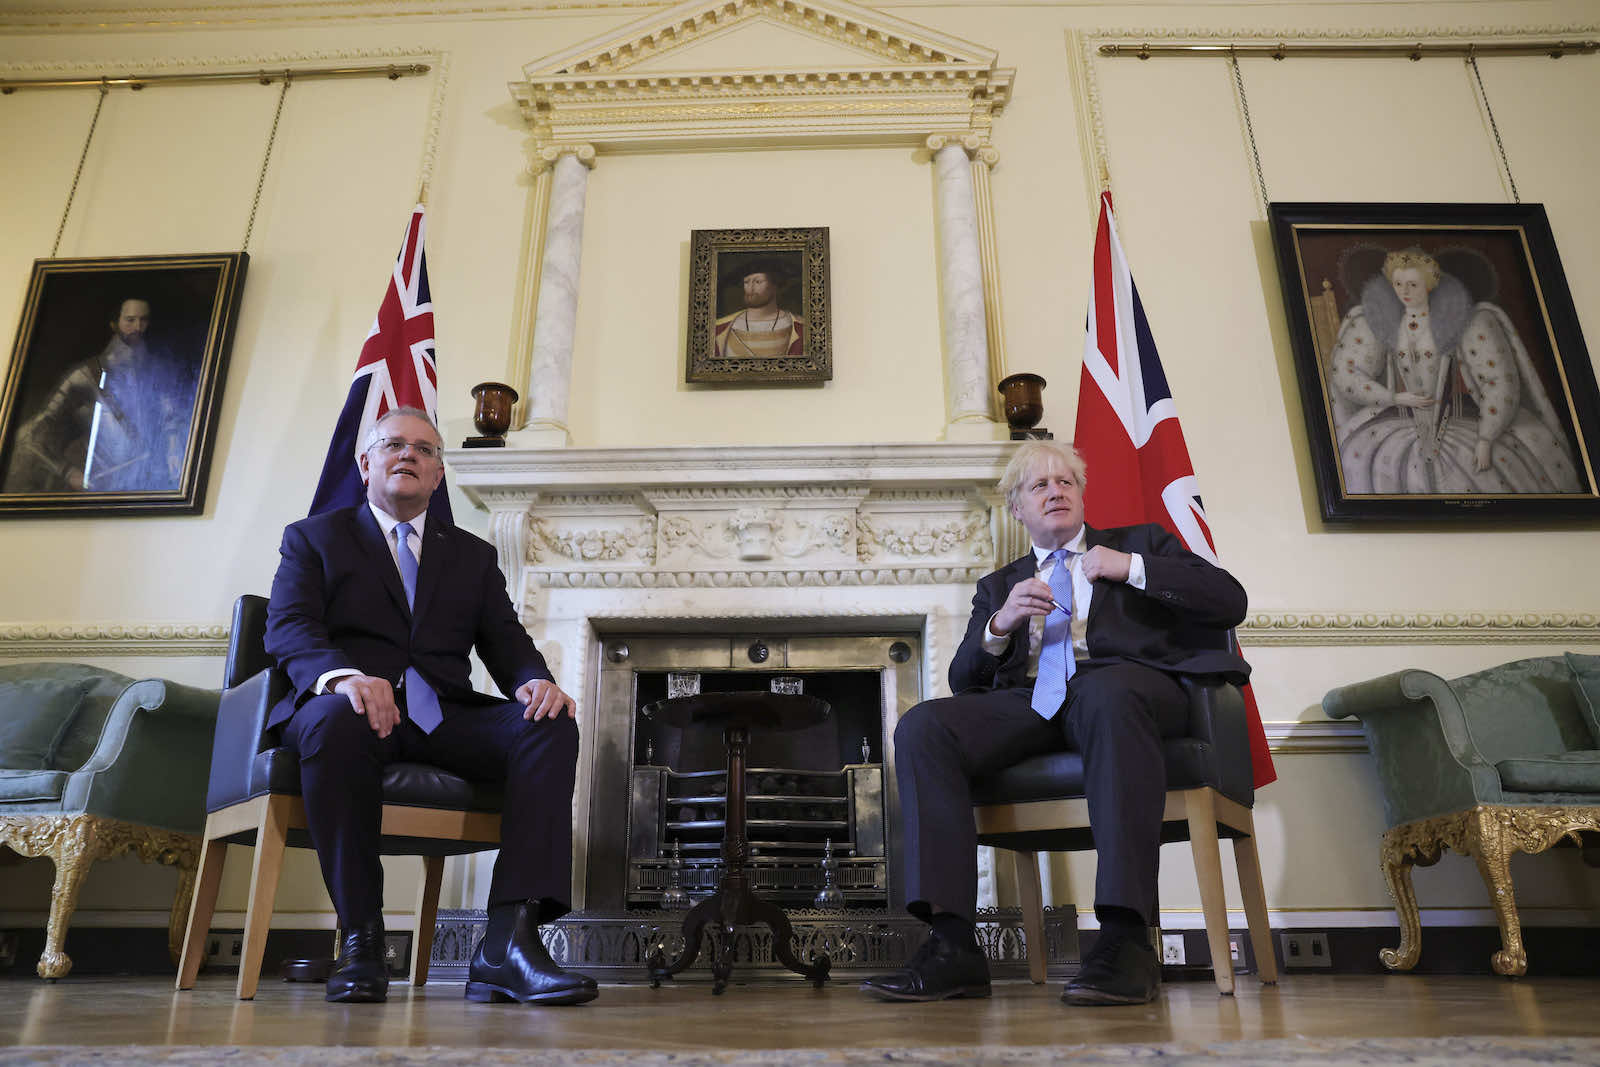 Australia's Prime Minister Scott Morrison meeting with British counterpart Boris Johnson in London this month (Andrew Parsons/No 10 Downing Street/Flickr)